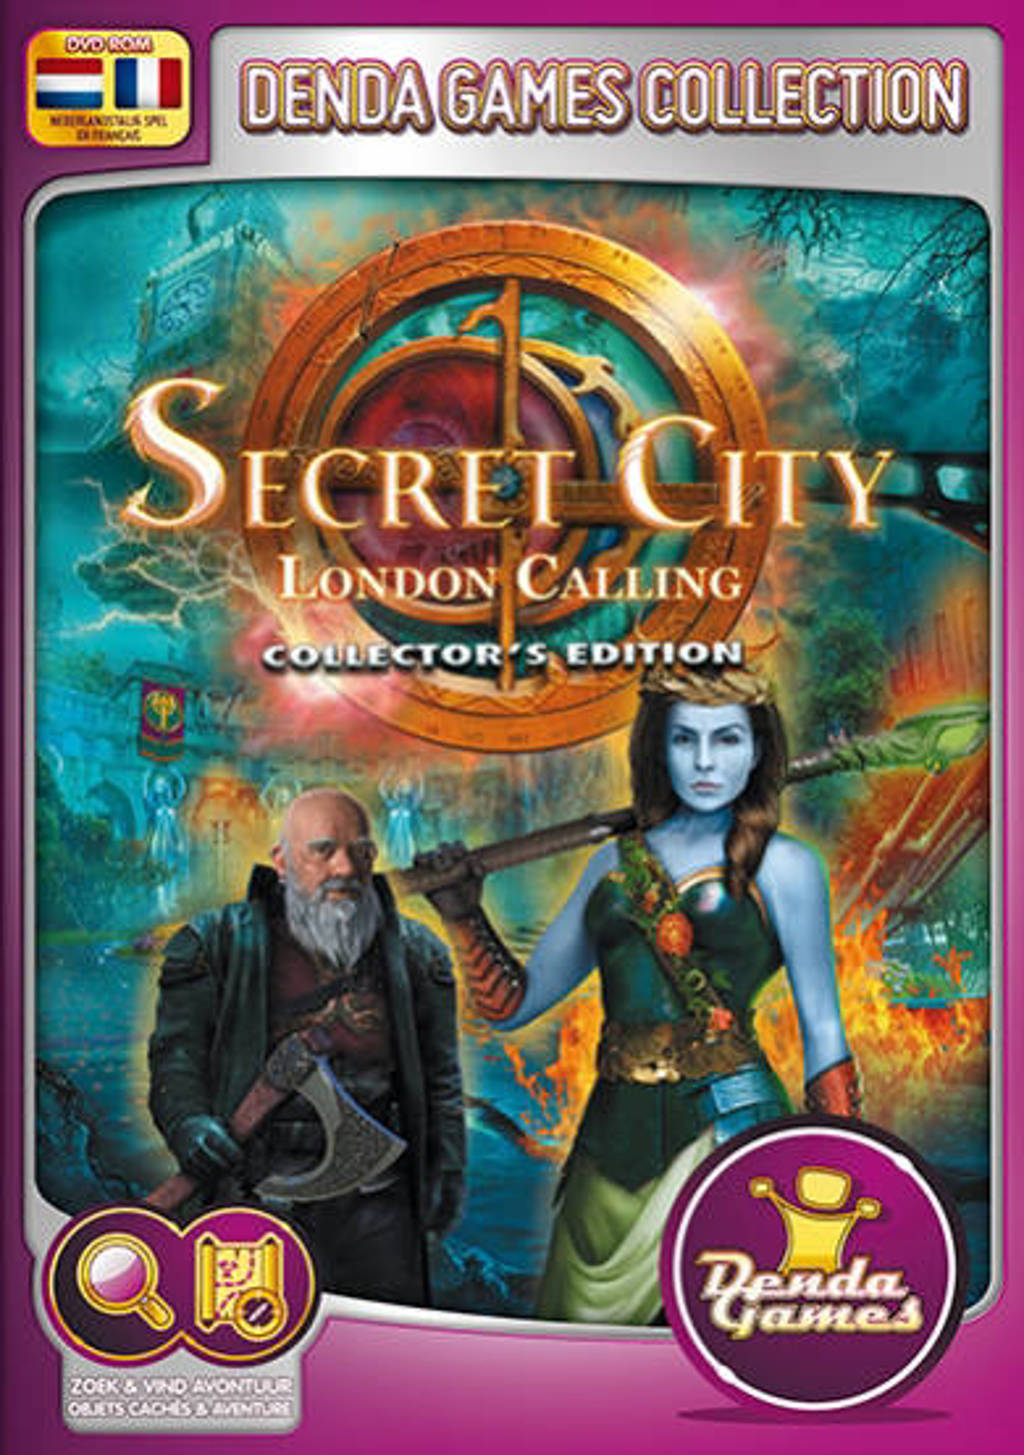 Secret city - London calling (Collectors edition) (PC)